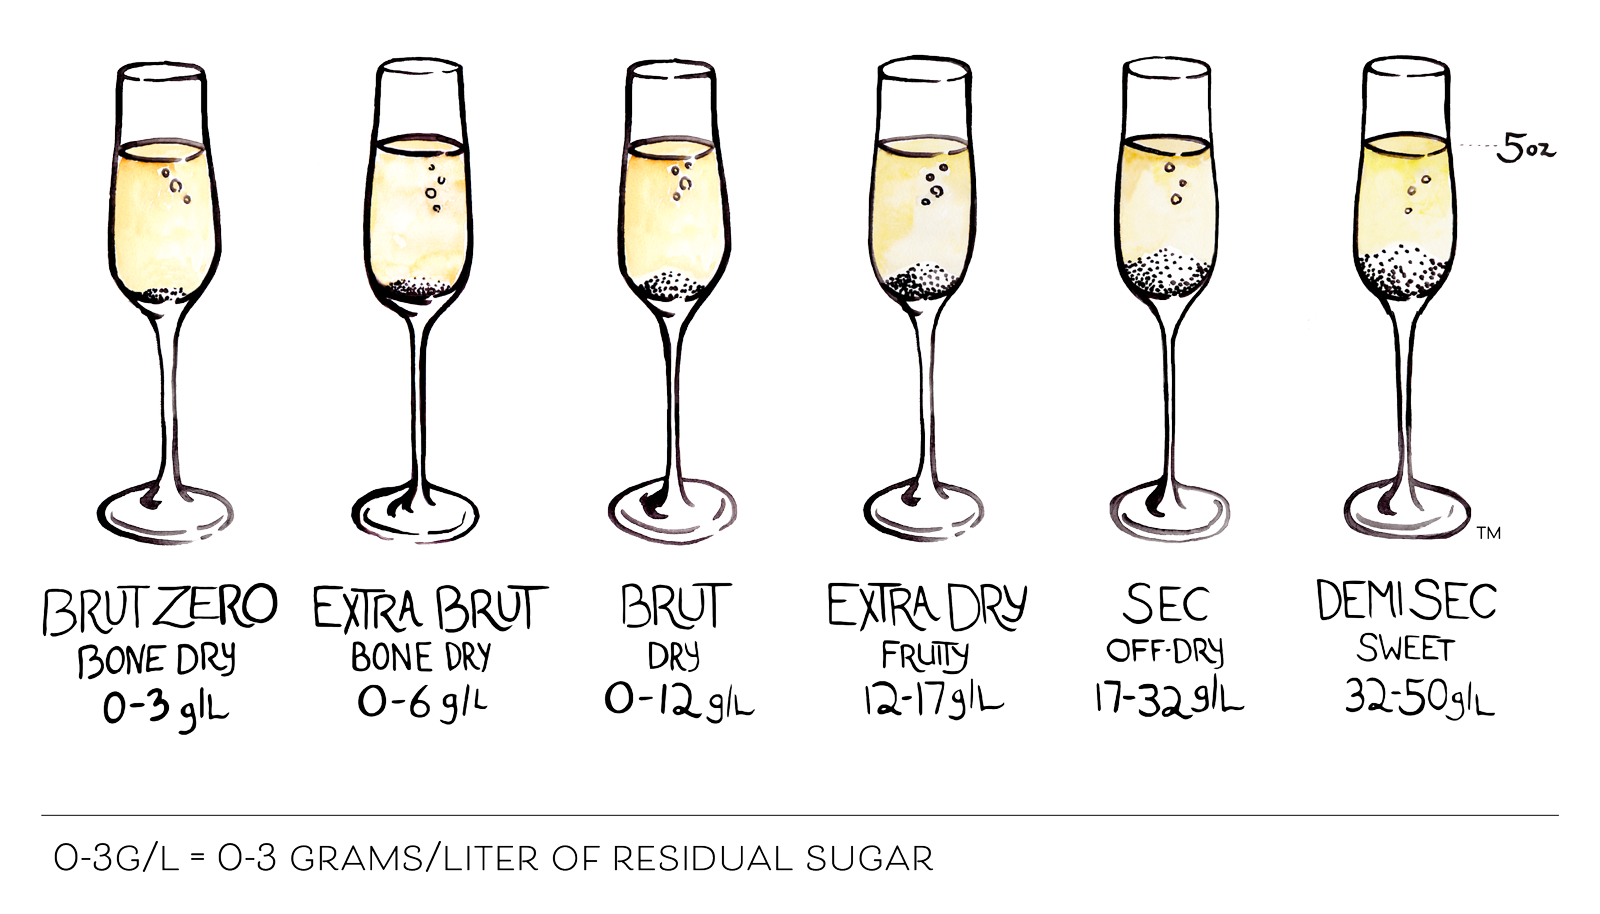 ISC sparkling wine sweetness scale